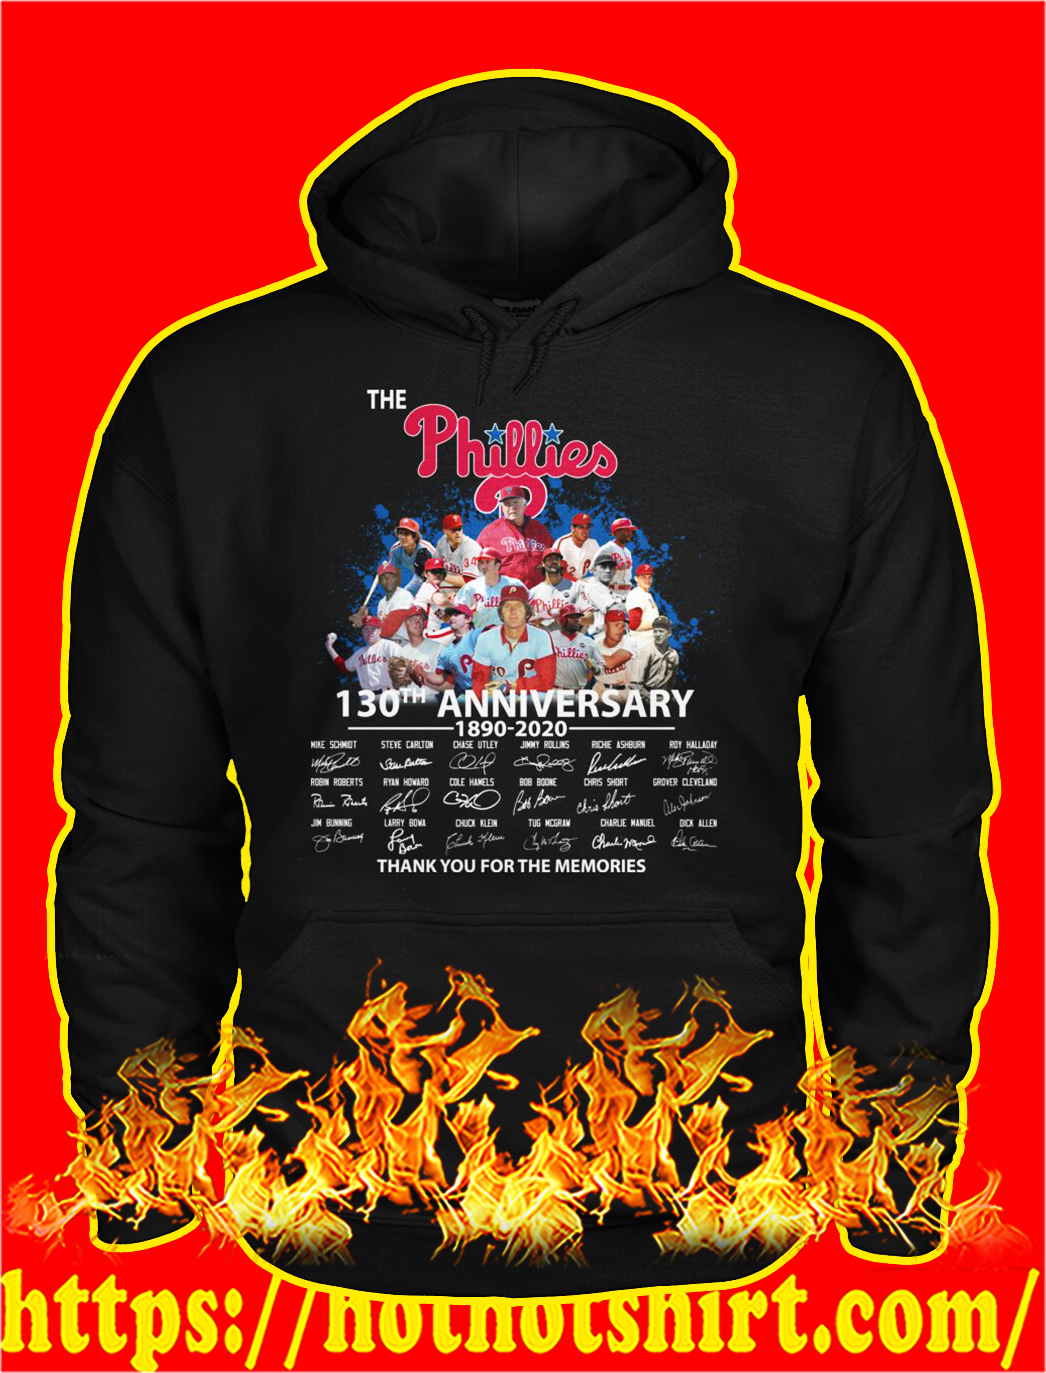 The phillies 130th anniversary thank you for the memories hoodie